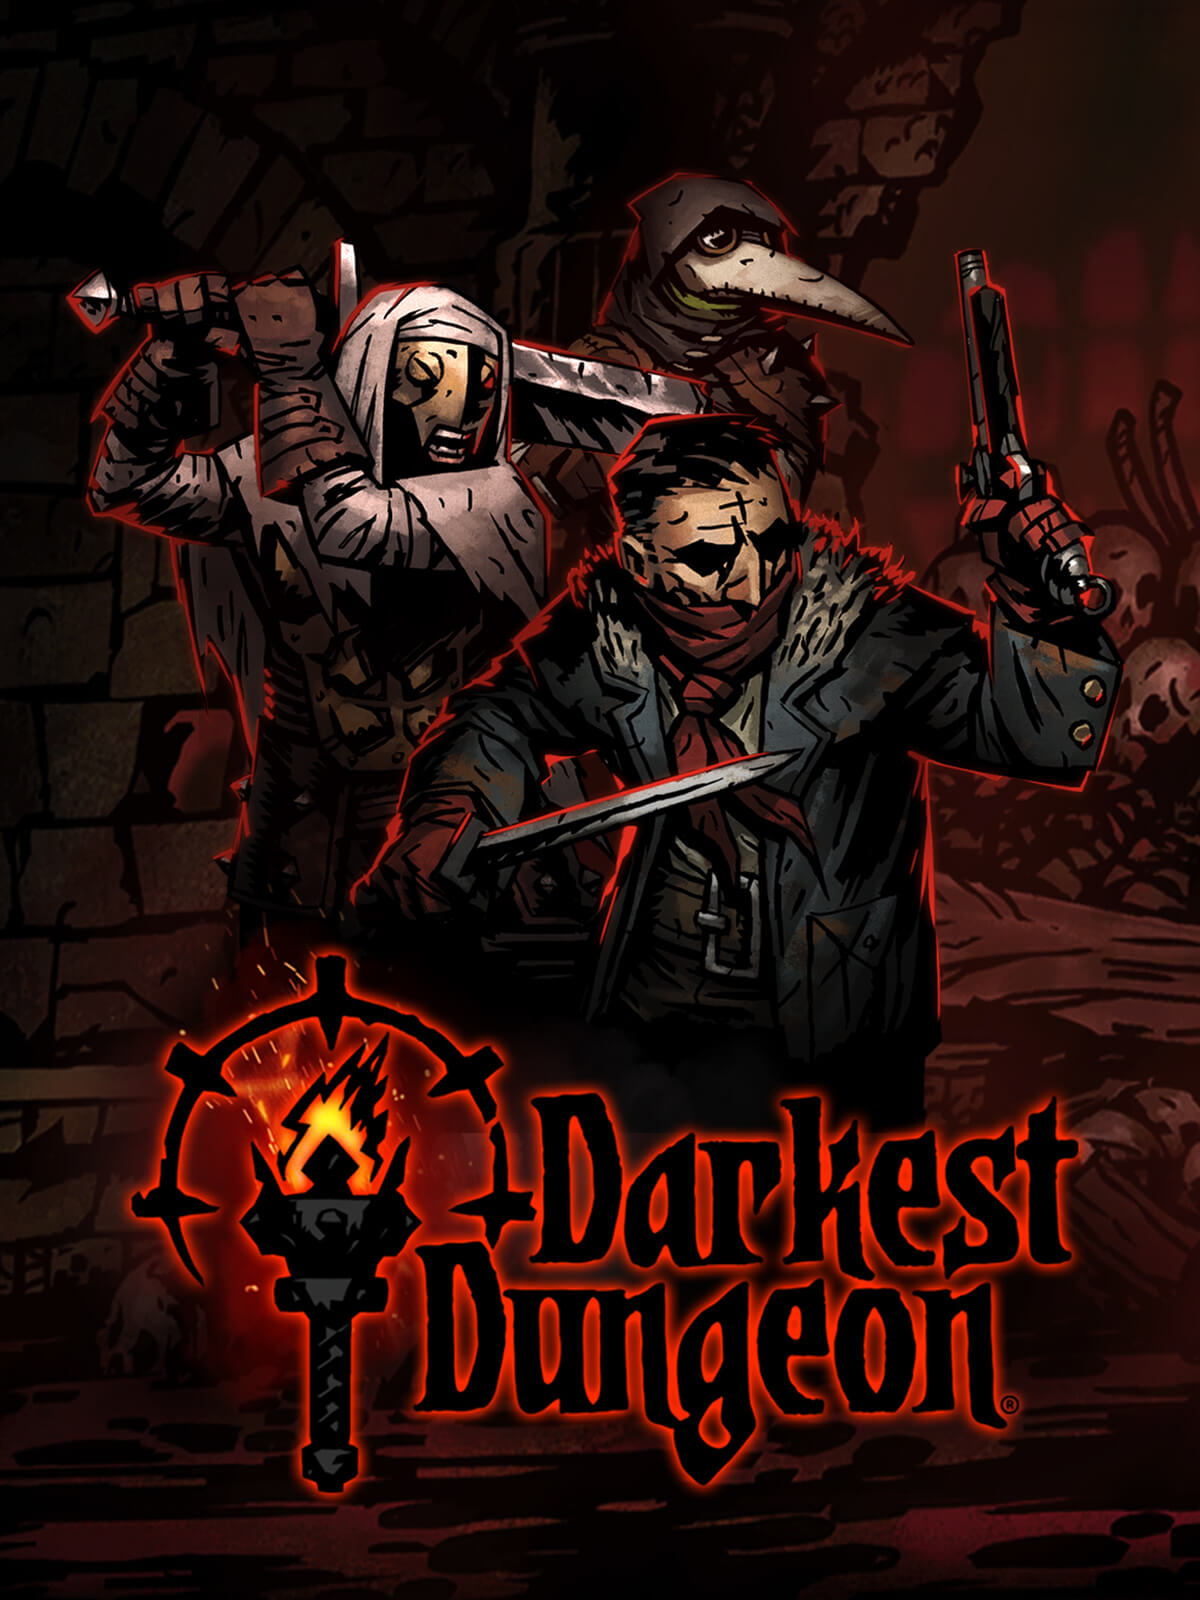 egs-darkestdungeon-redhookstudios-s2-120